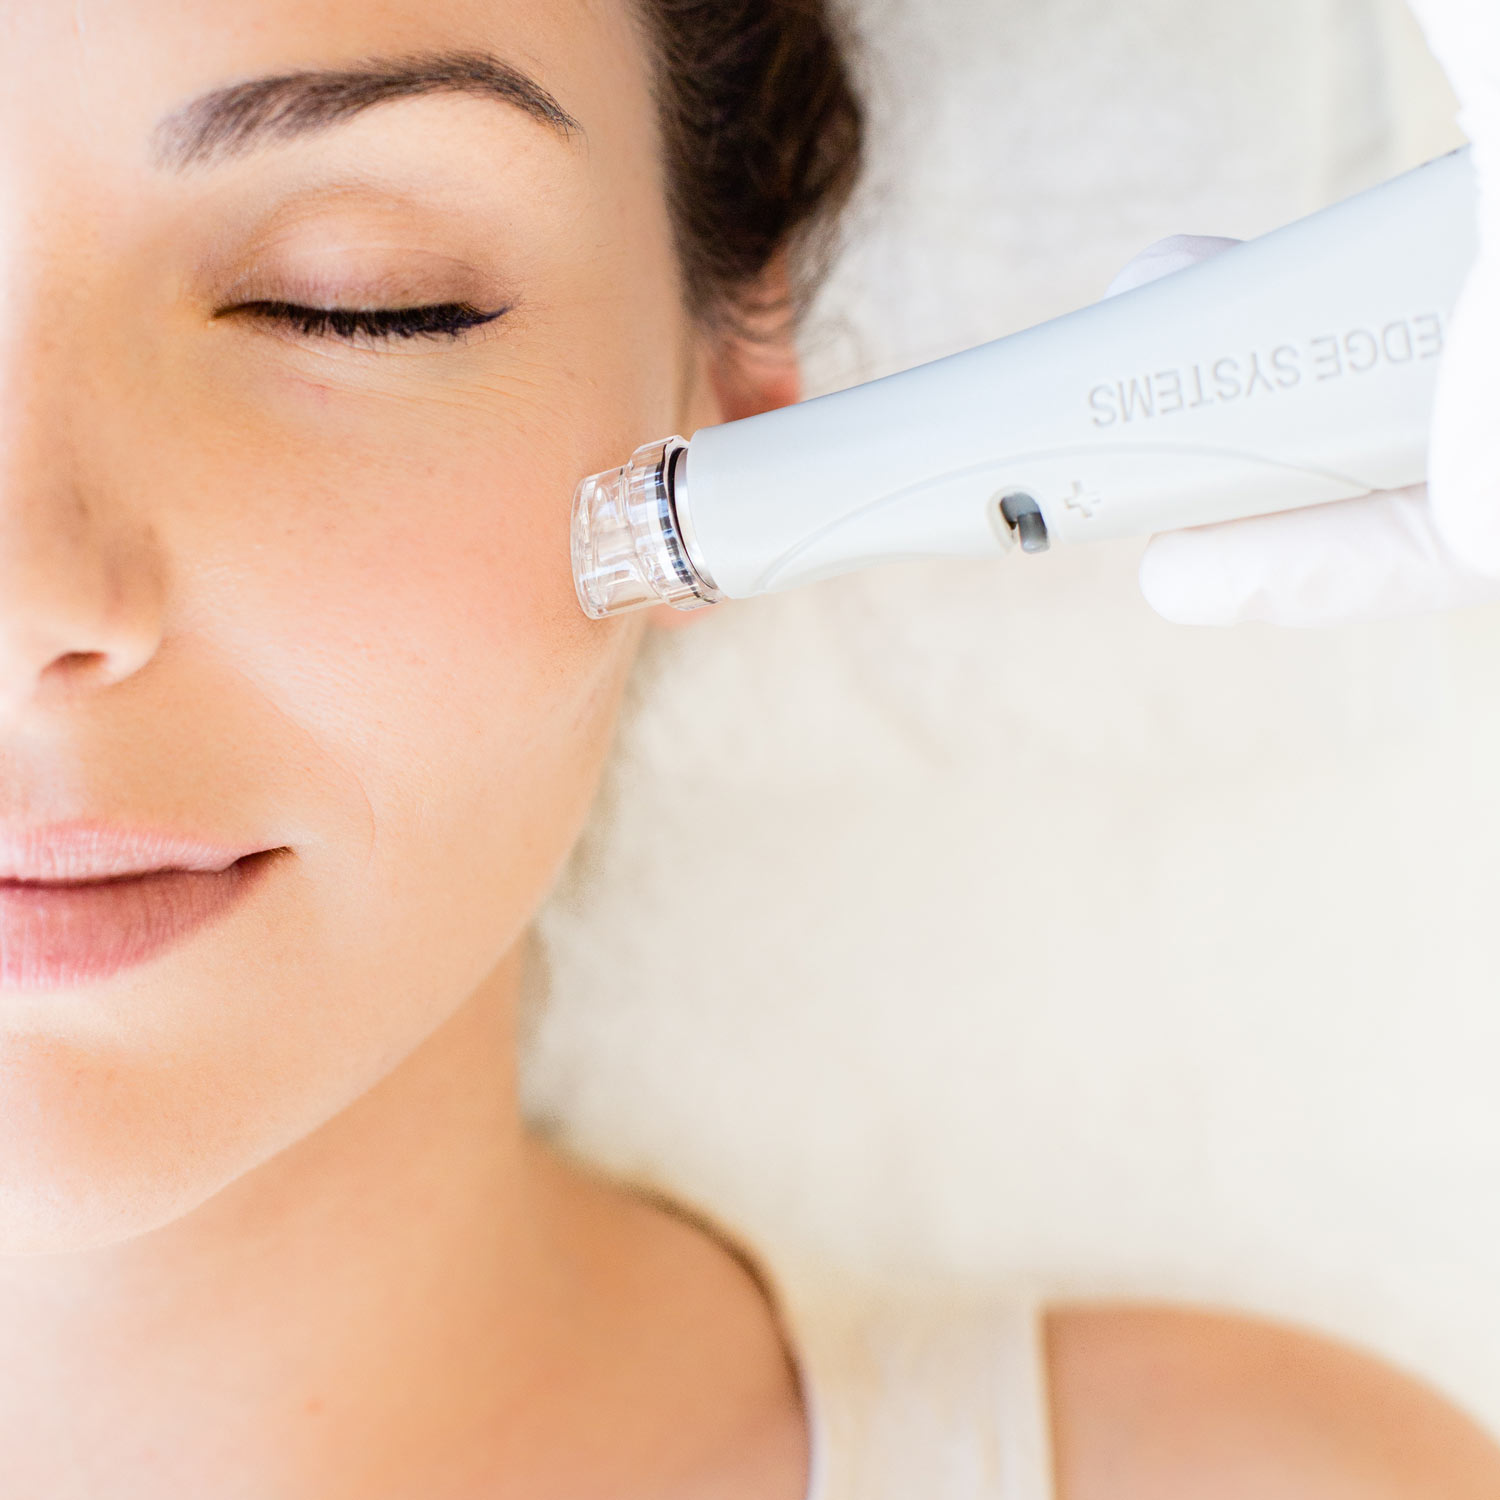 Images of Hydrafacial treatment on skin